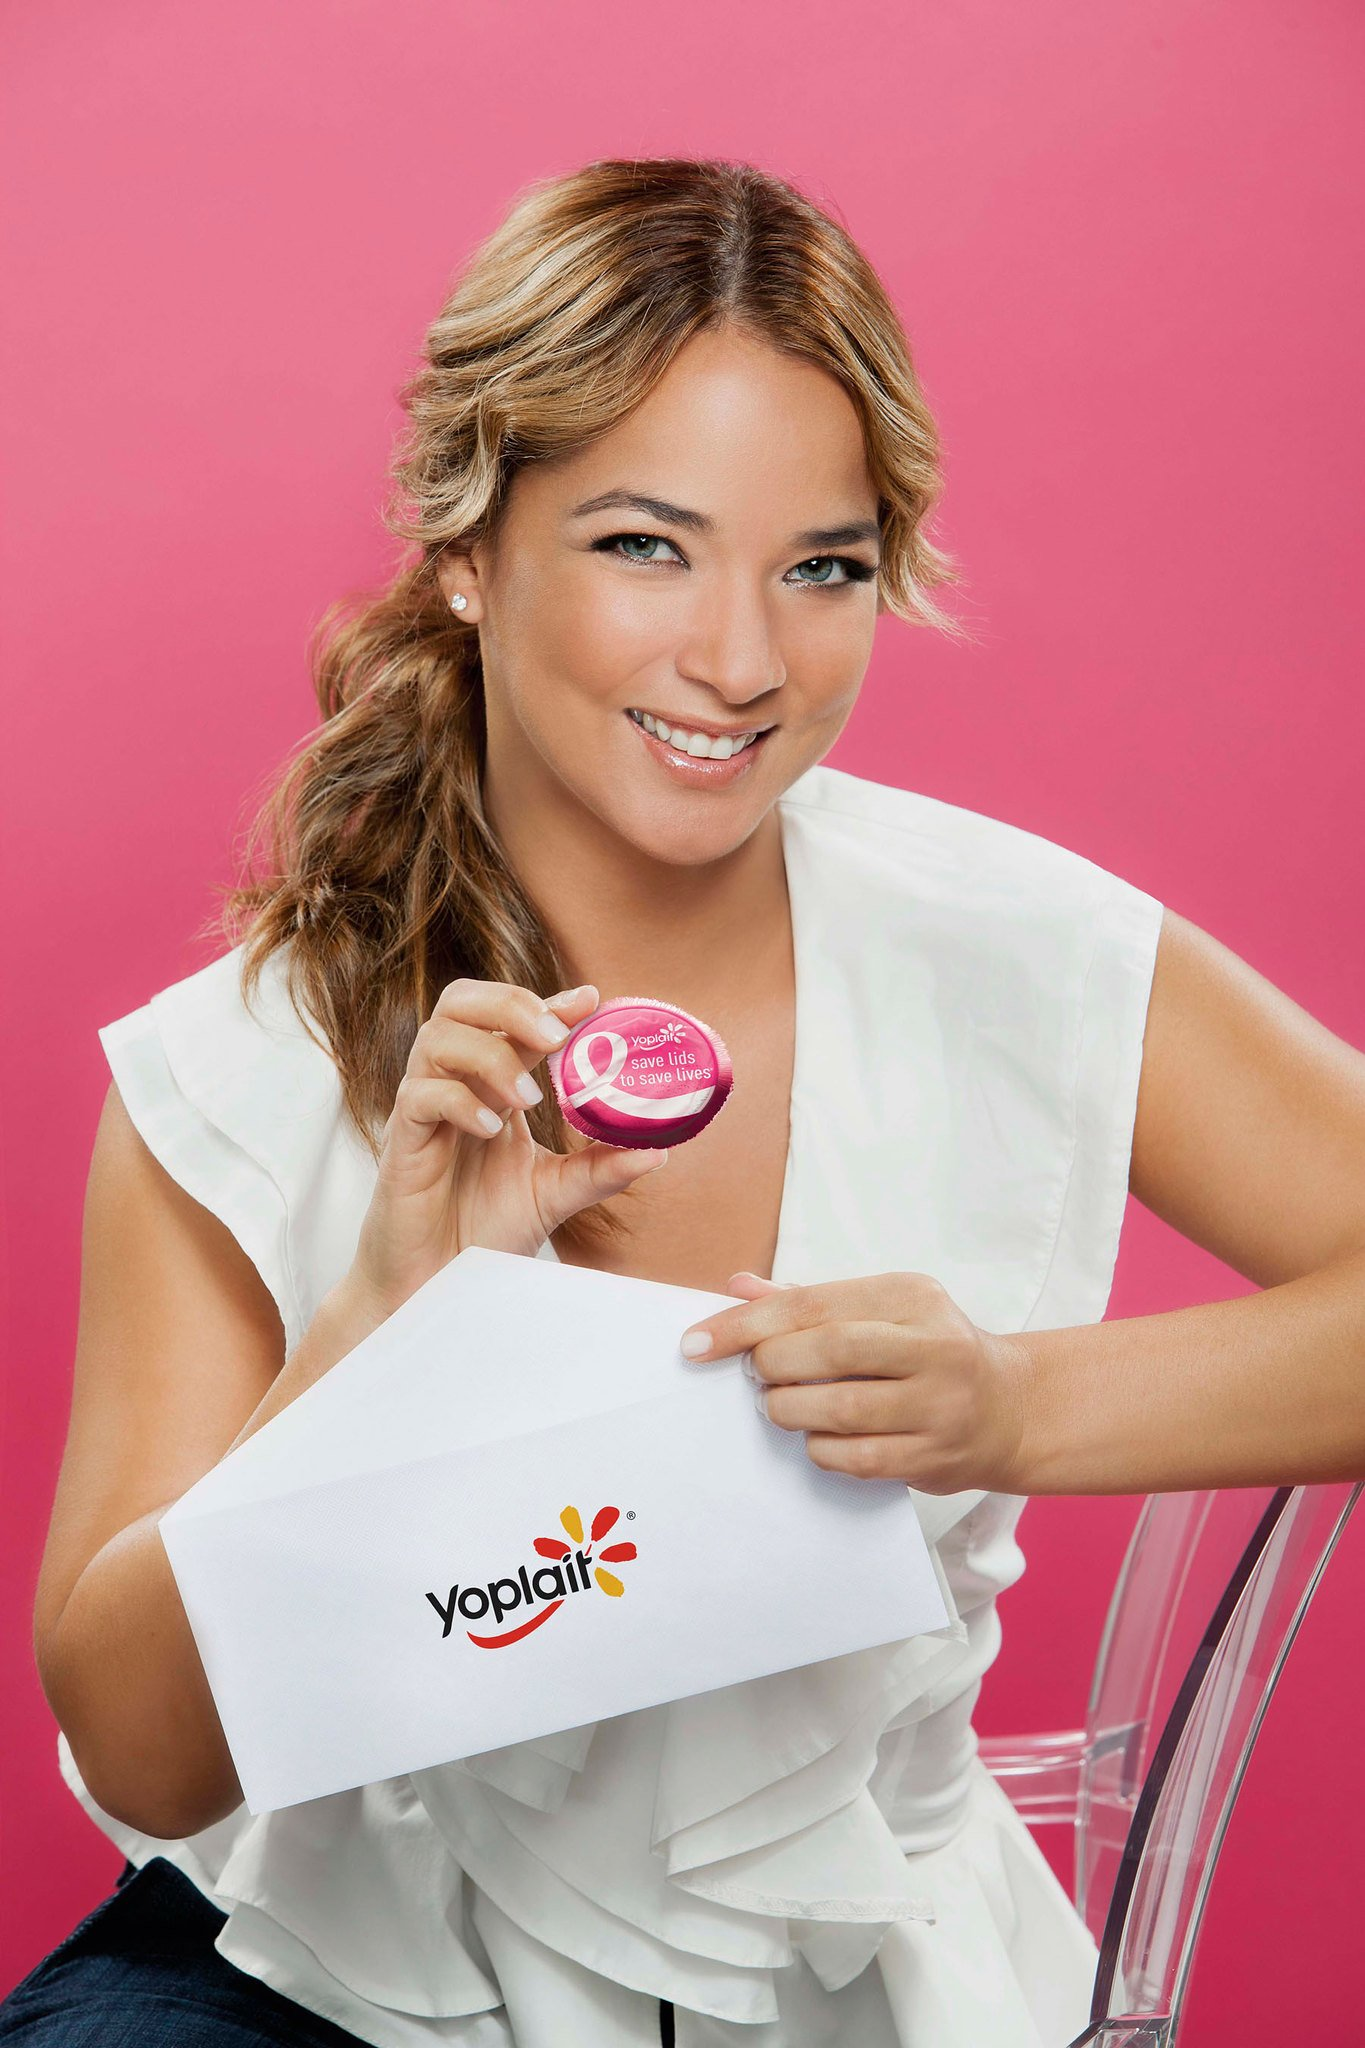 Adamari López para Save Lids to Save Lives(R) de Yoplait. | Imagen: Flickr